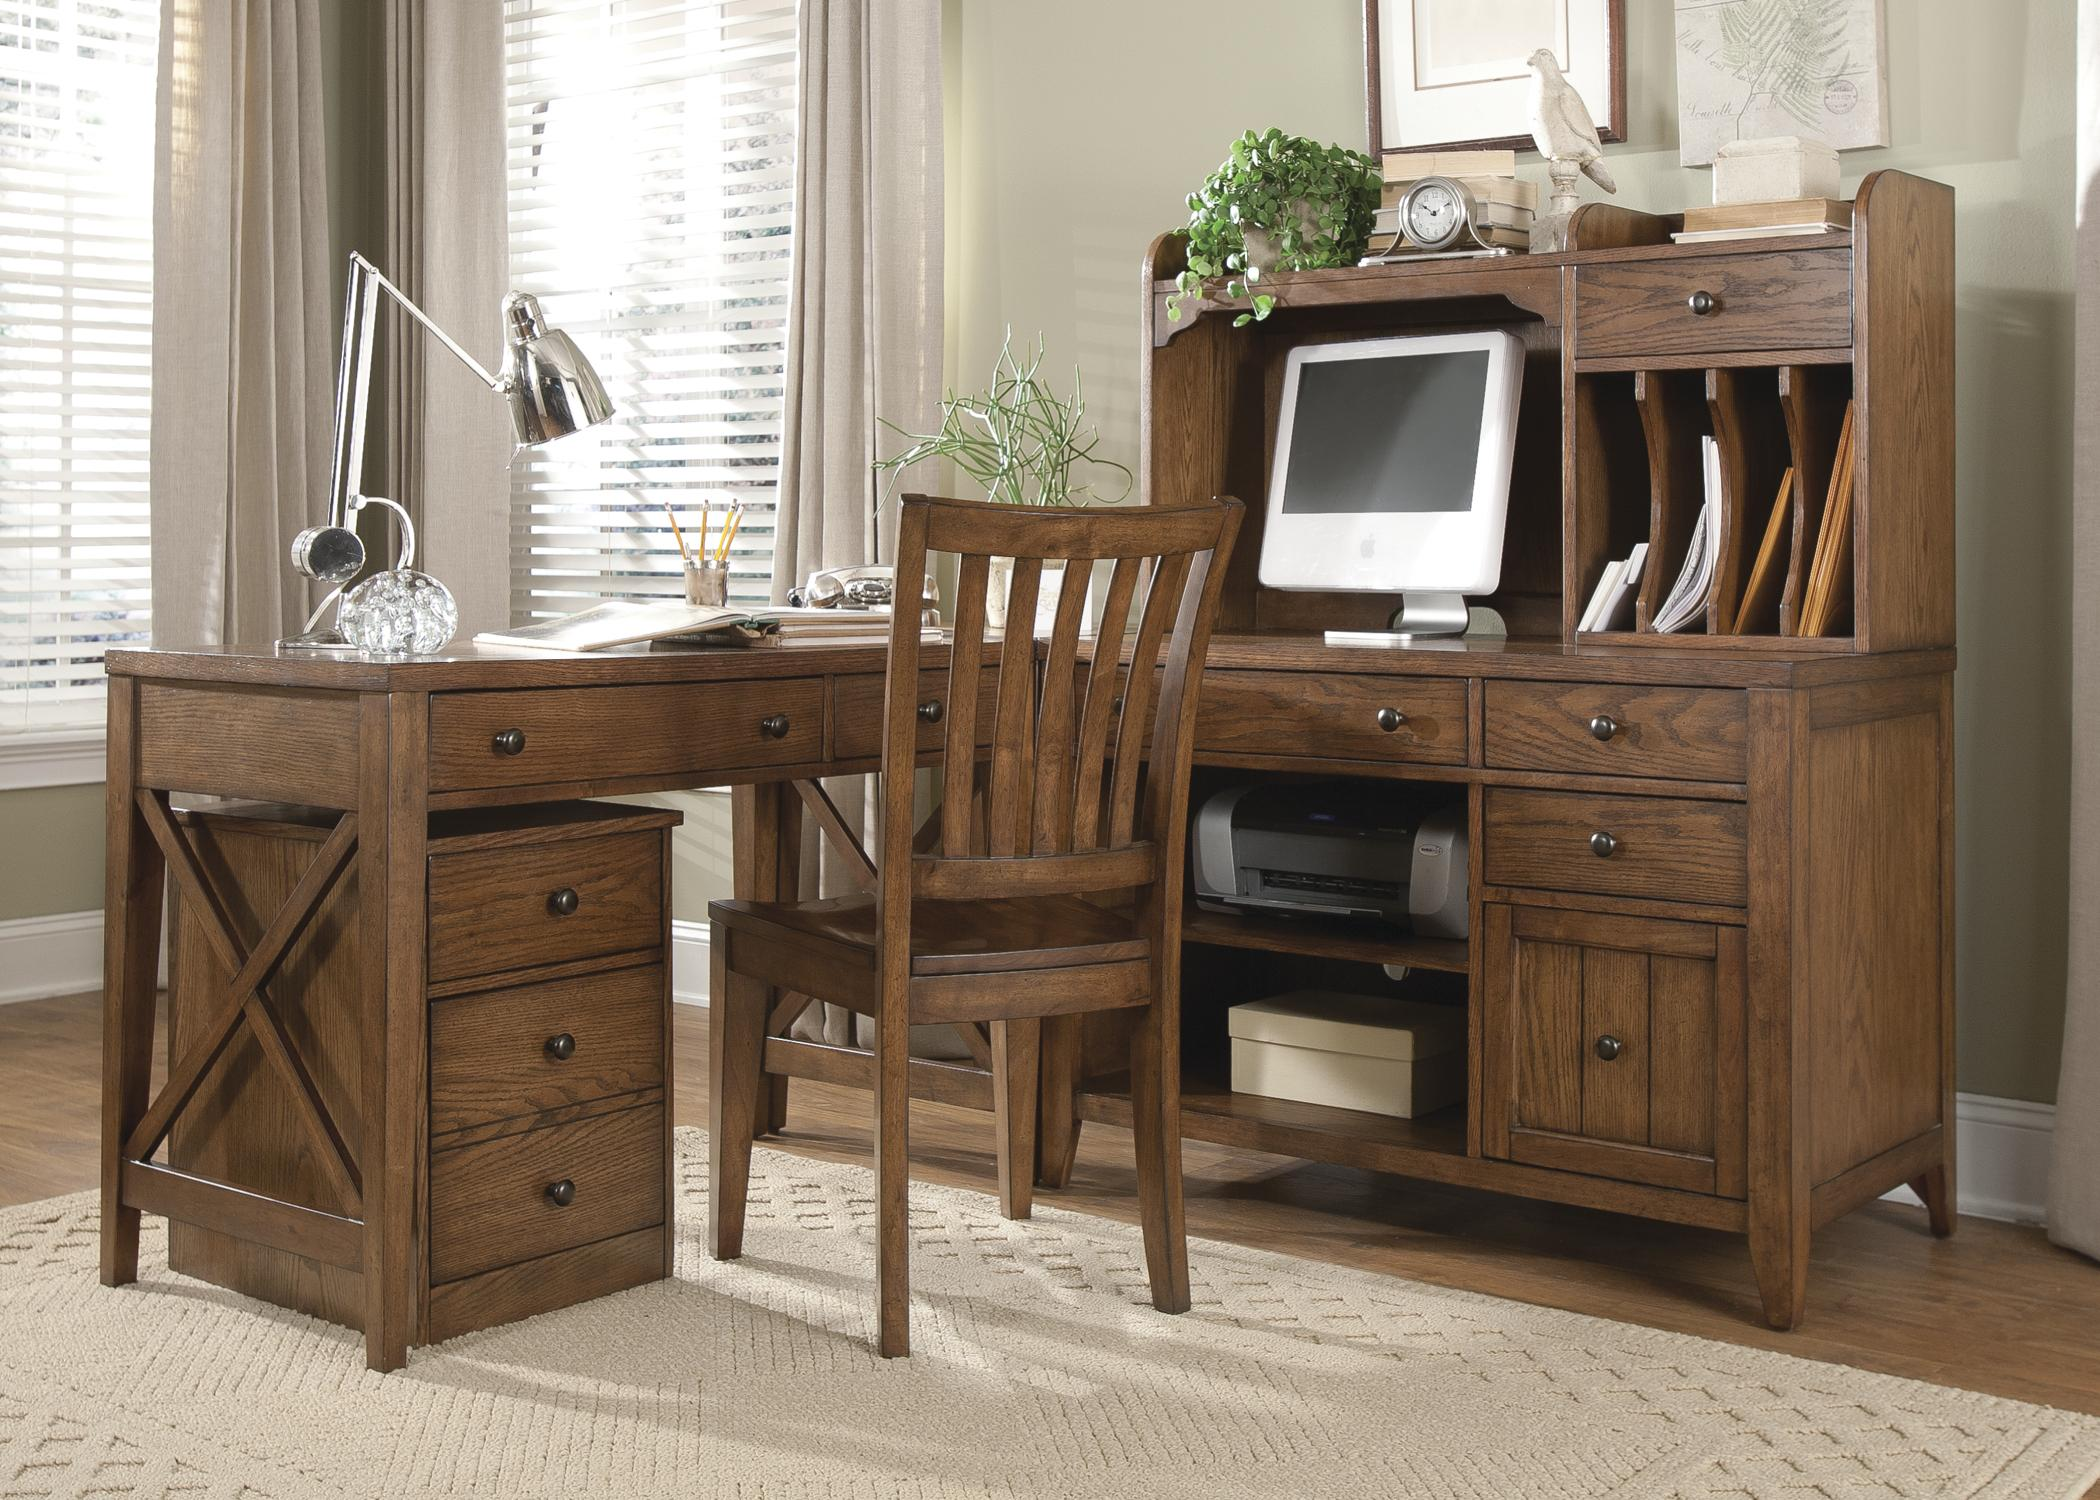 Desks With Drawers Hearthstone 5 Piece L Shaped Desk And File Cabinet Unit By Liberty Furniture At Lindy S Furniture Company